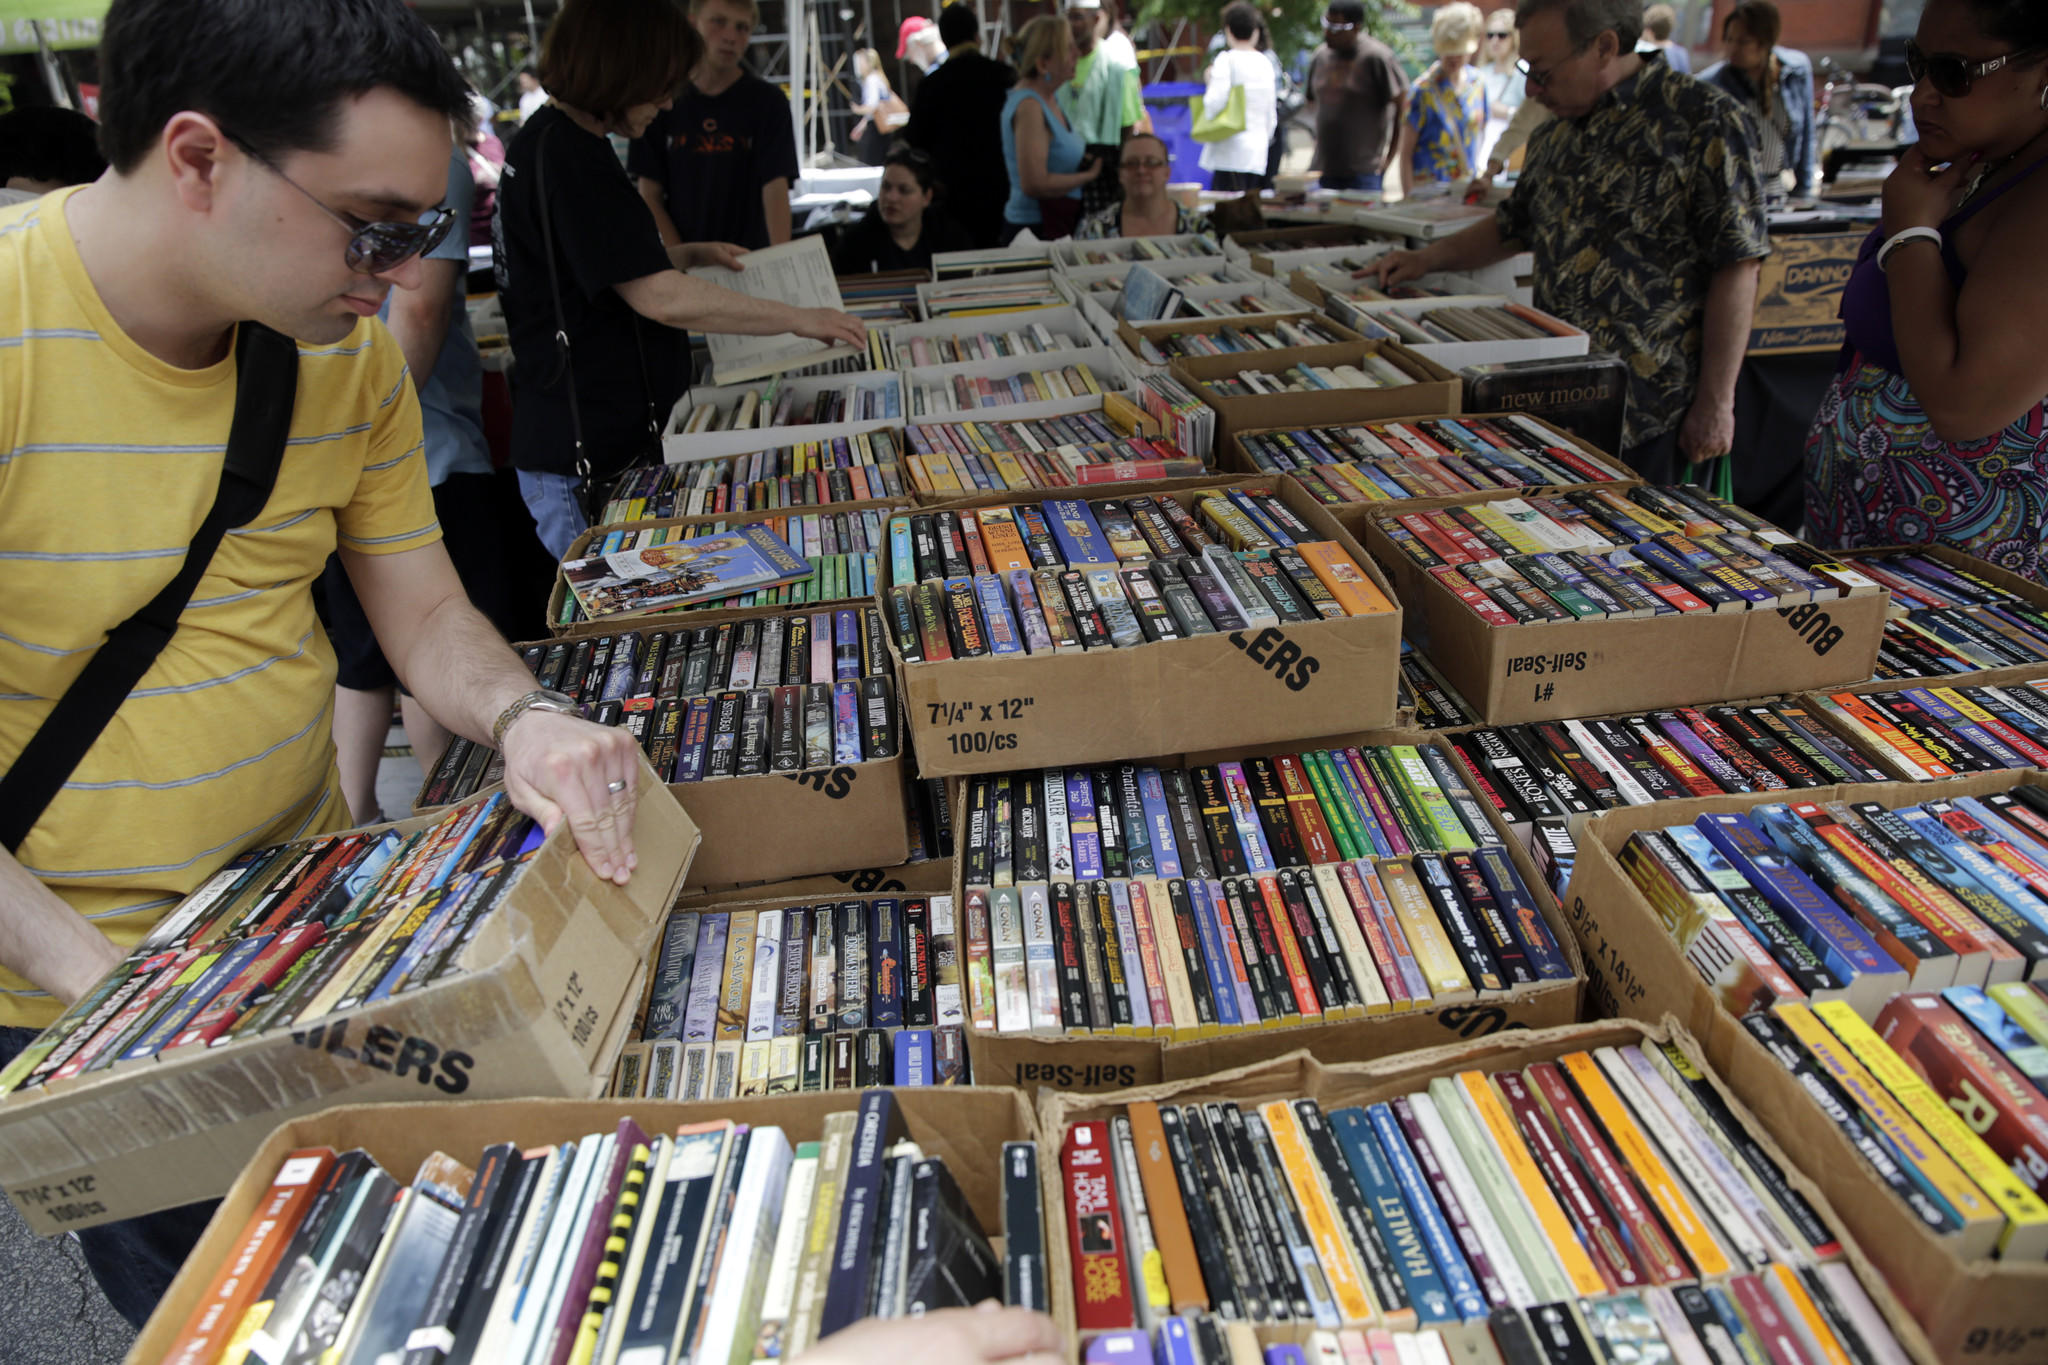 Shoppers look through paperbacks at the K&L Books booth at the 2013 Printers Row Lit Fest Sunday, June 9, 2013.